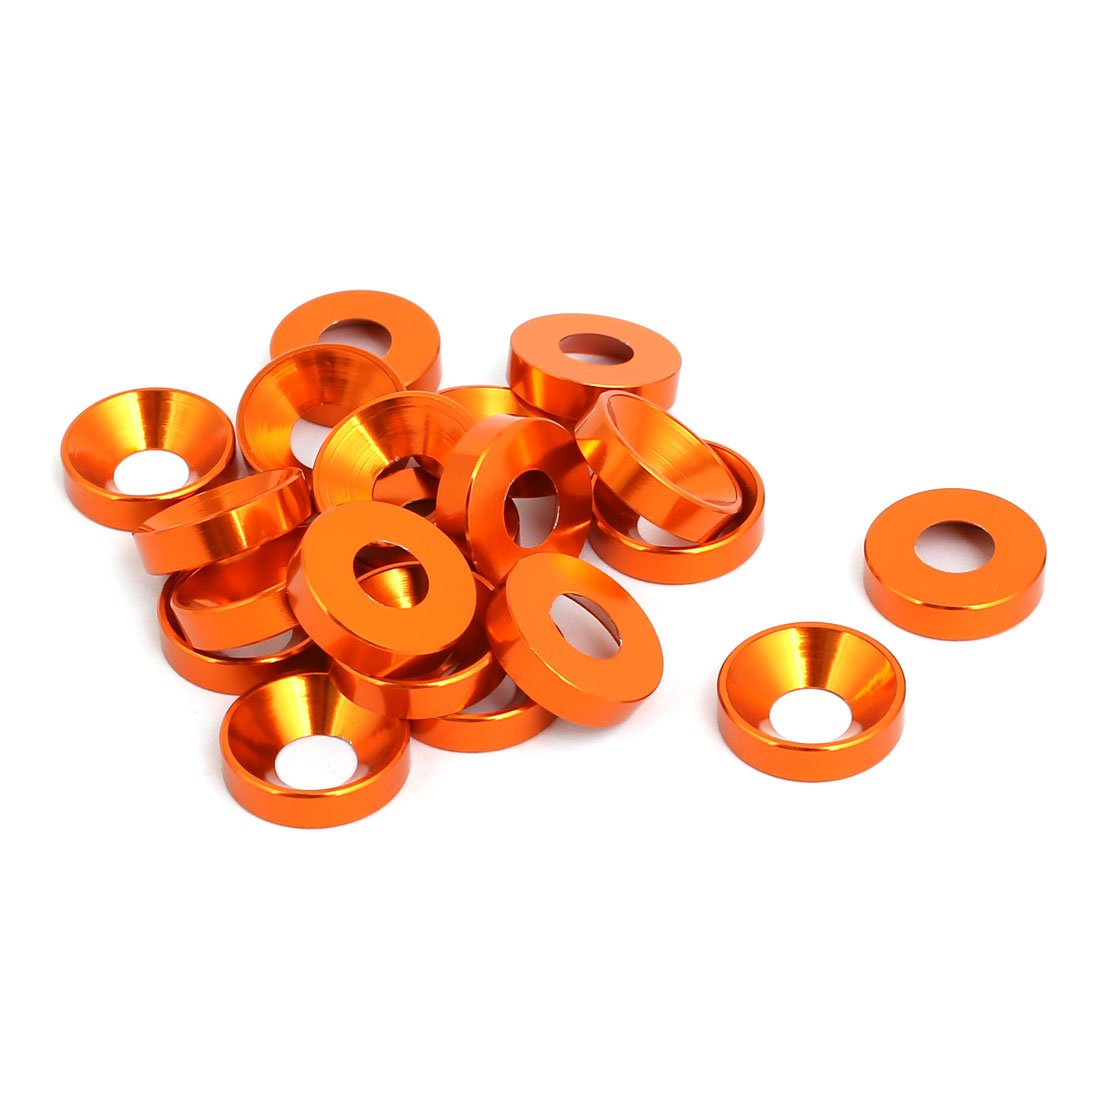 uxcell M6 Aluminium Alloy Car Bumper Trunk Fender Washer Orange 20pcs a17061600ux0908